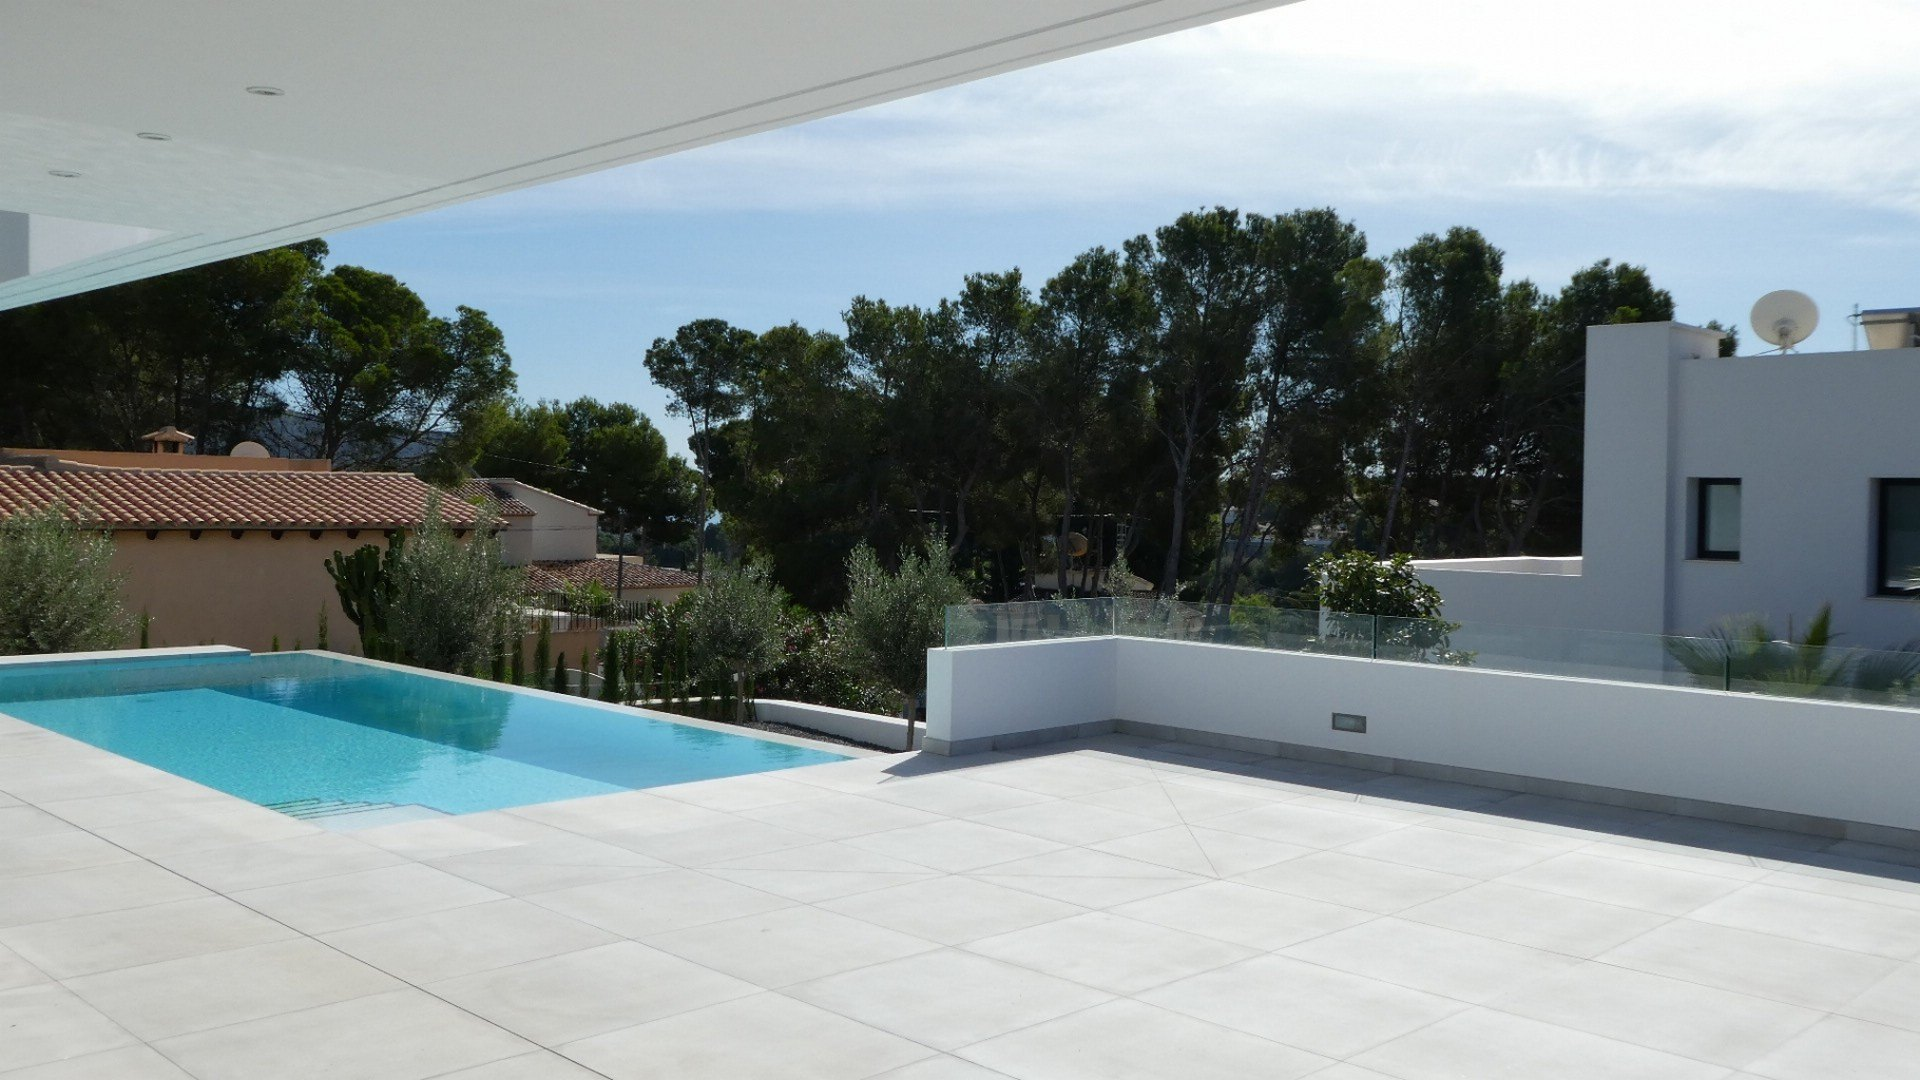 Fotogalería - 8 - Build a villa in Moraira: villas for sale in Moraira